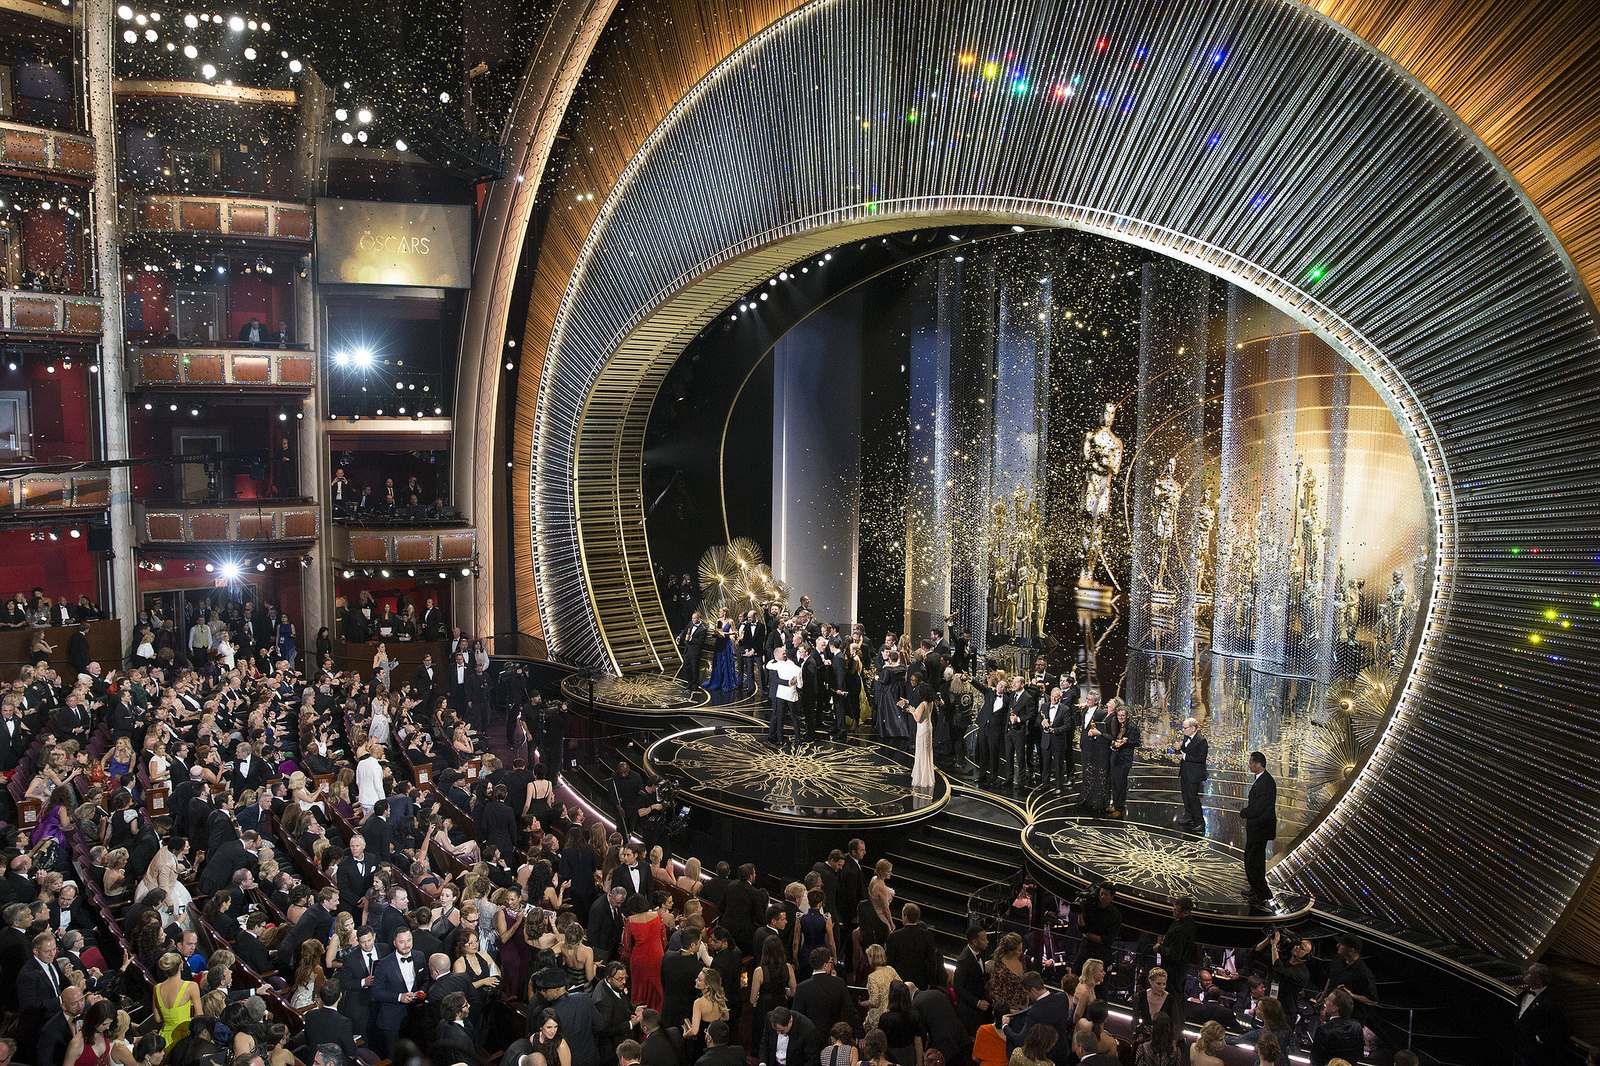 oscars 2016 The 88th Academy Awards Results